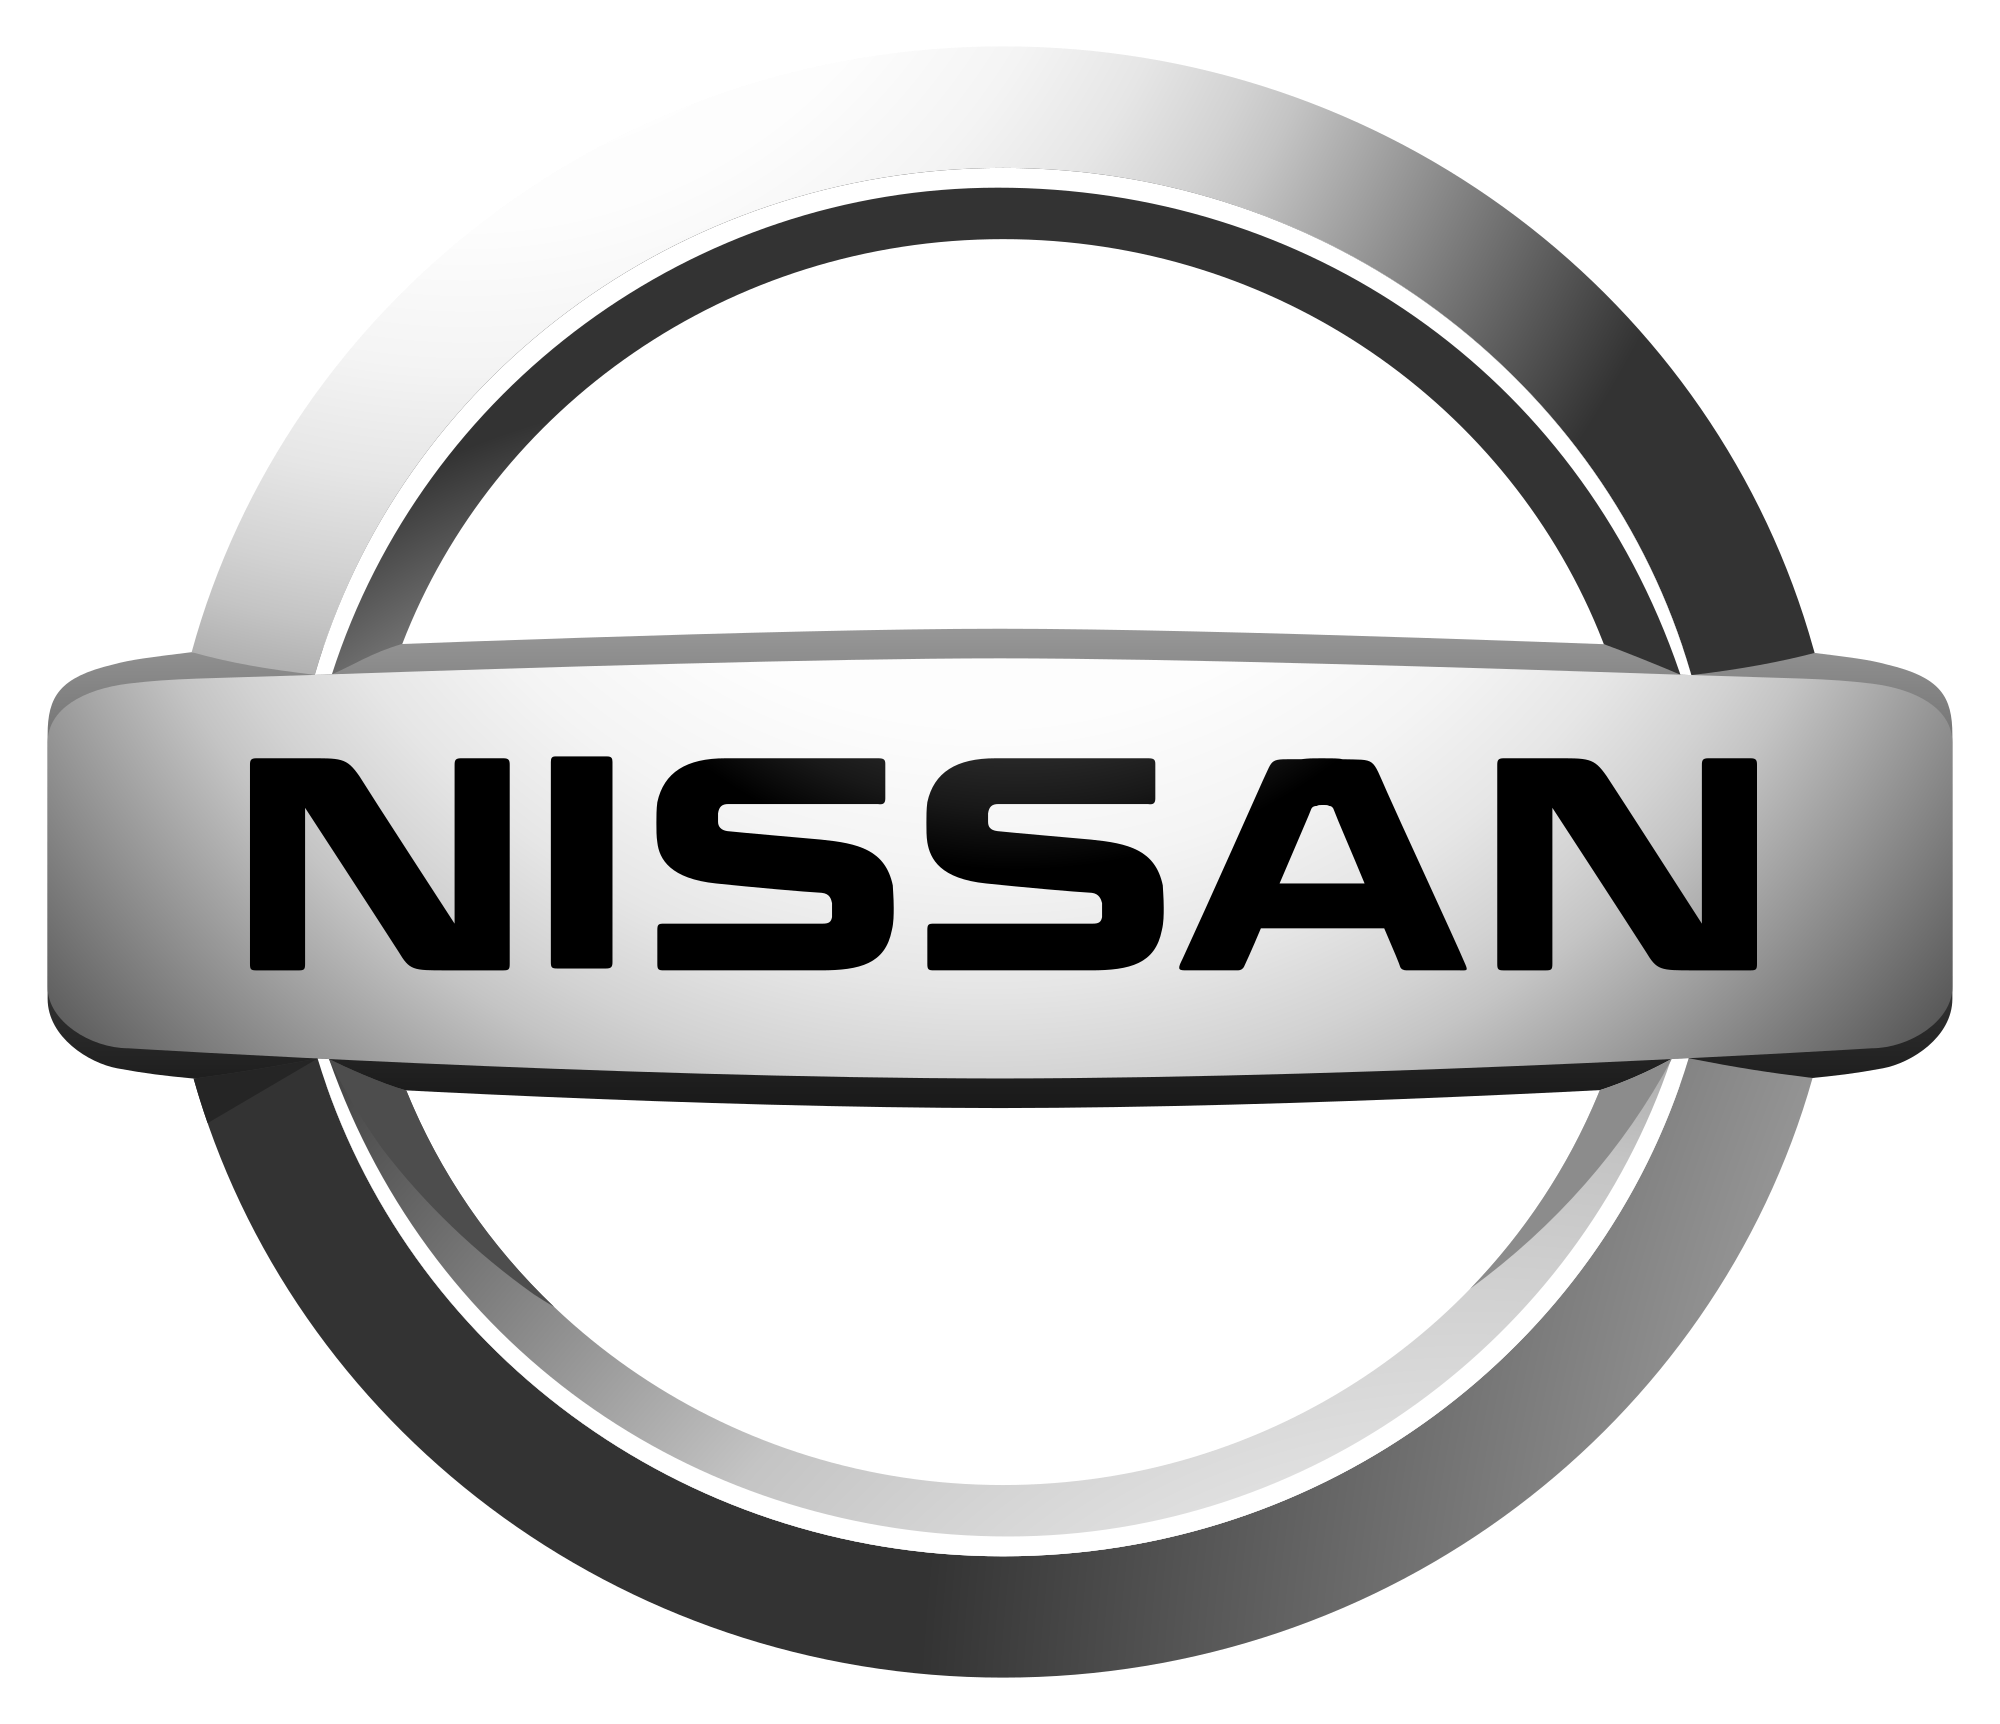 Blauweiss Garage AG - For your dream car. nissan-ID5-1.png?v=1586935437